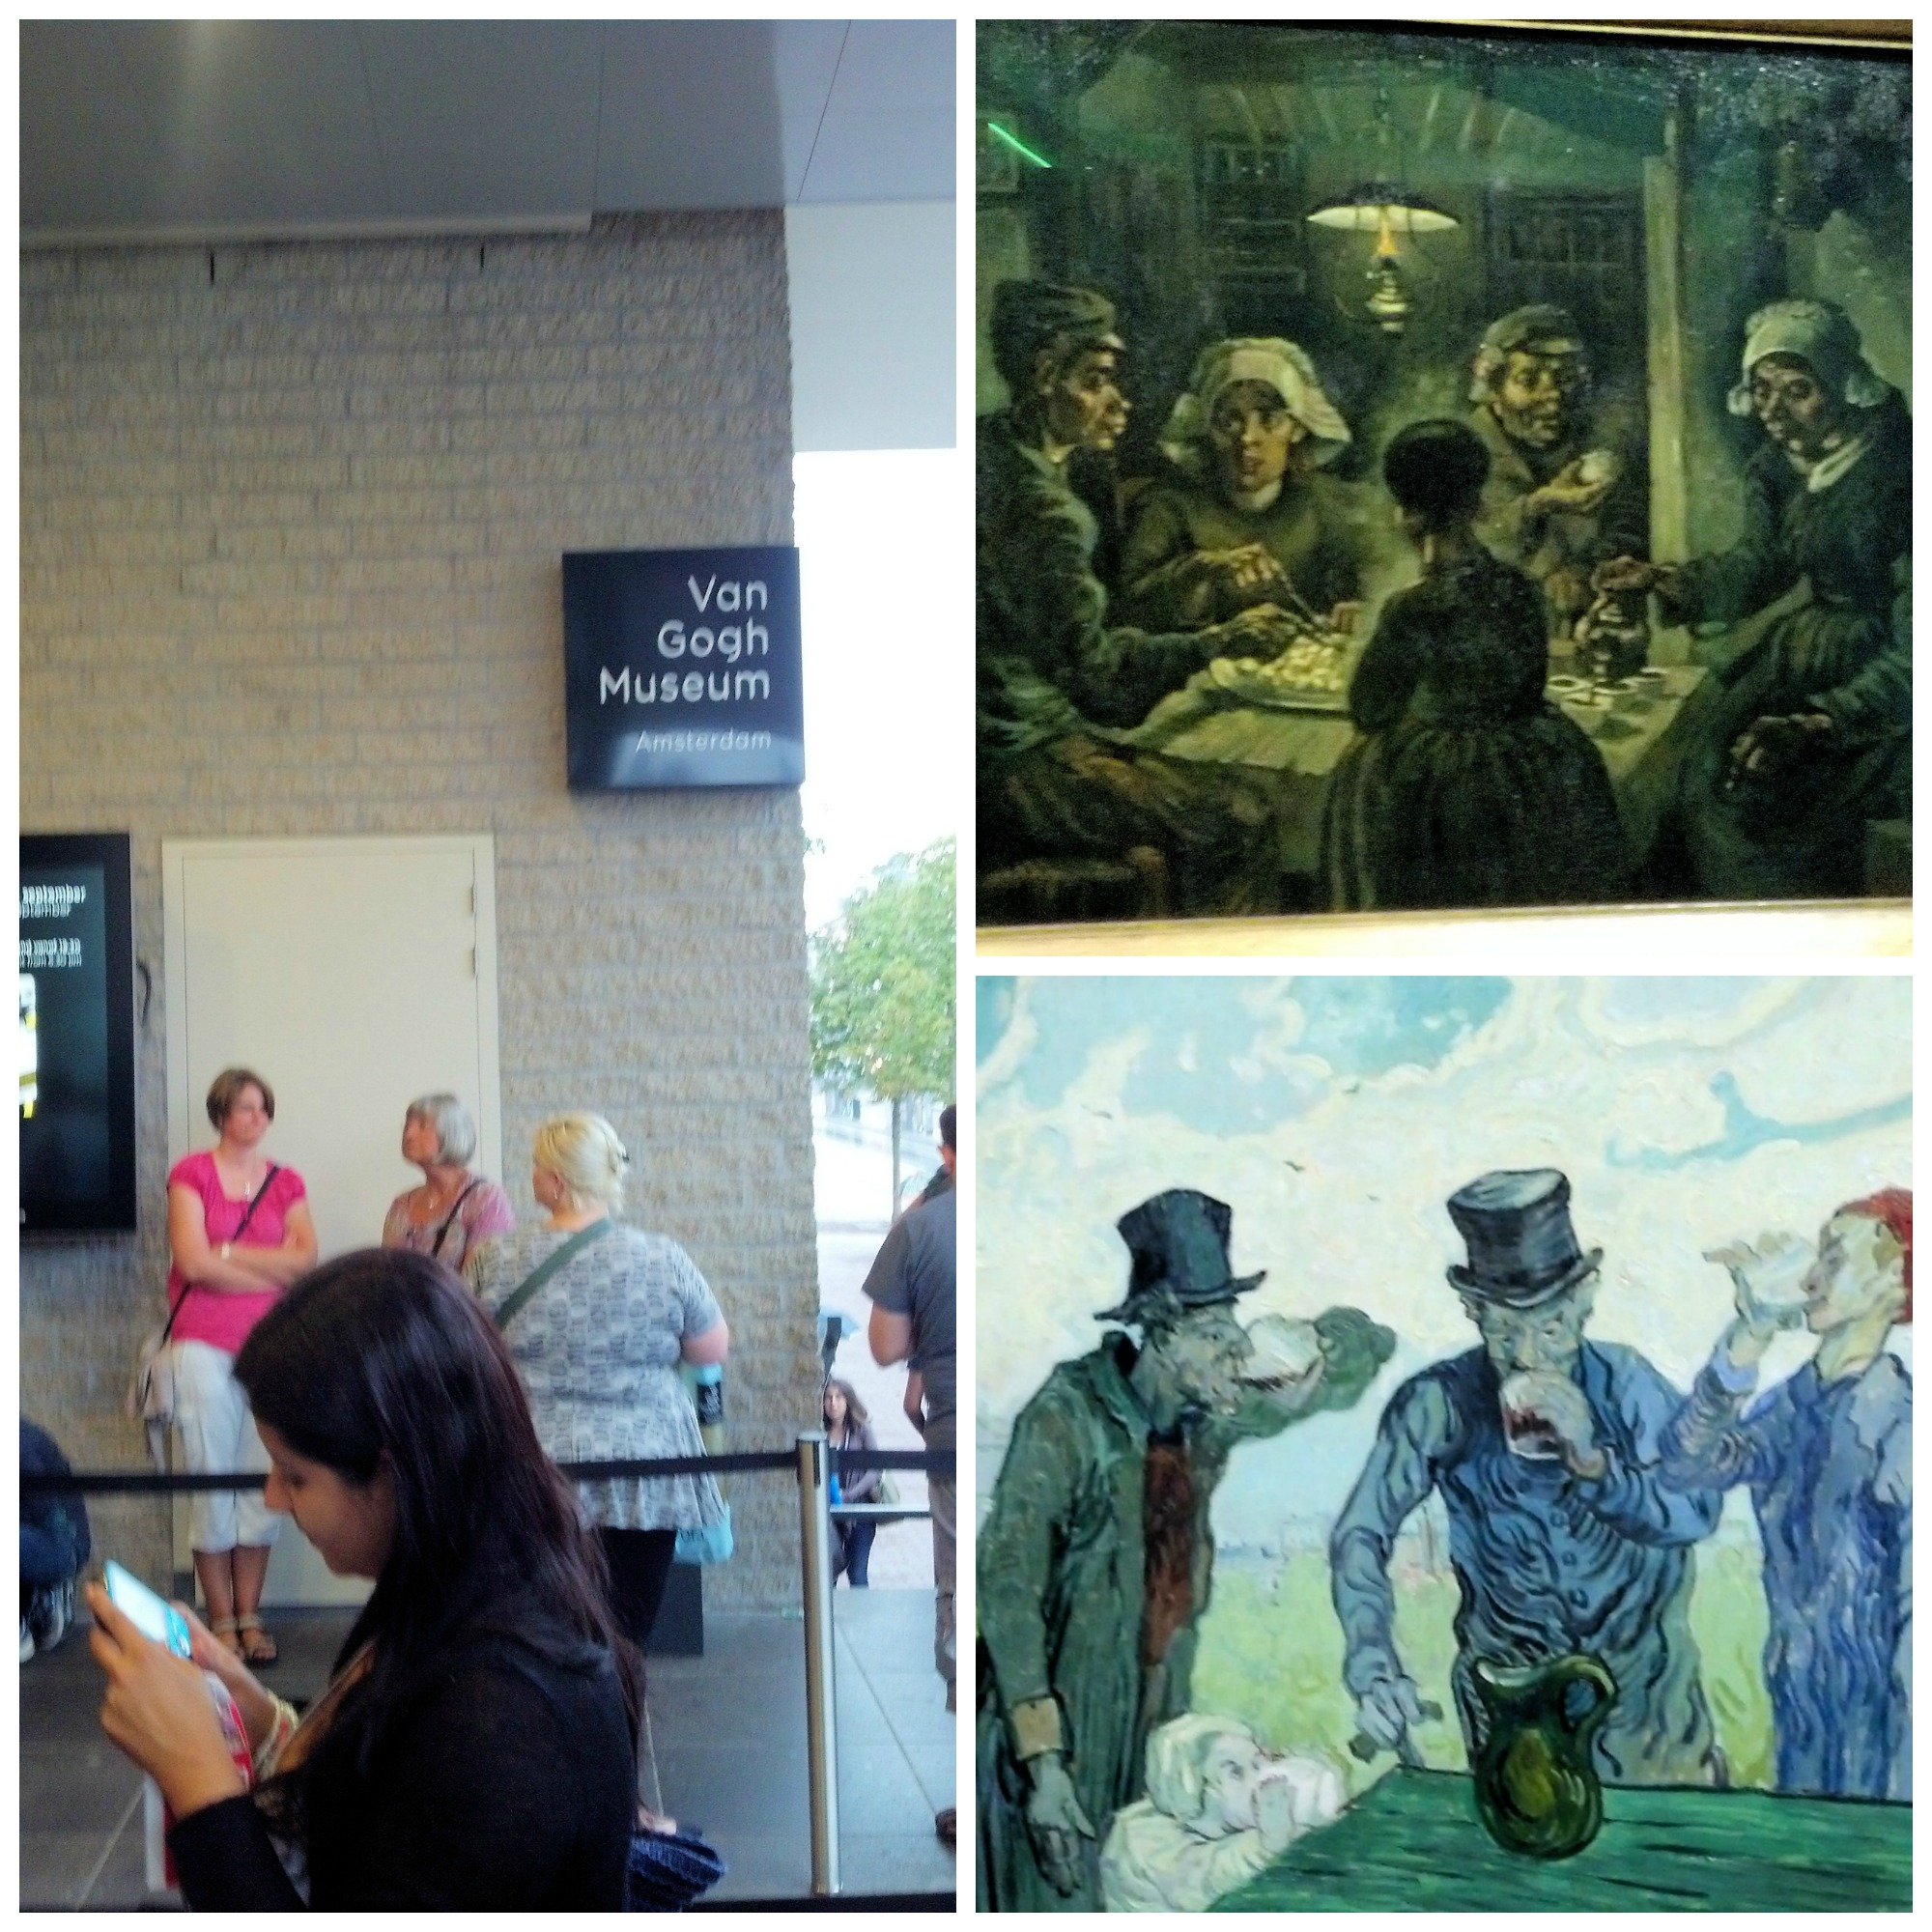 Waiting to enter the Van Gogh Museum and a couple pictures I took of the art while I was there.